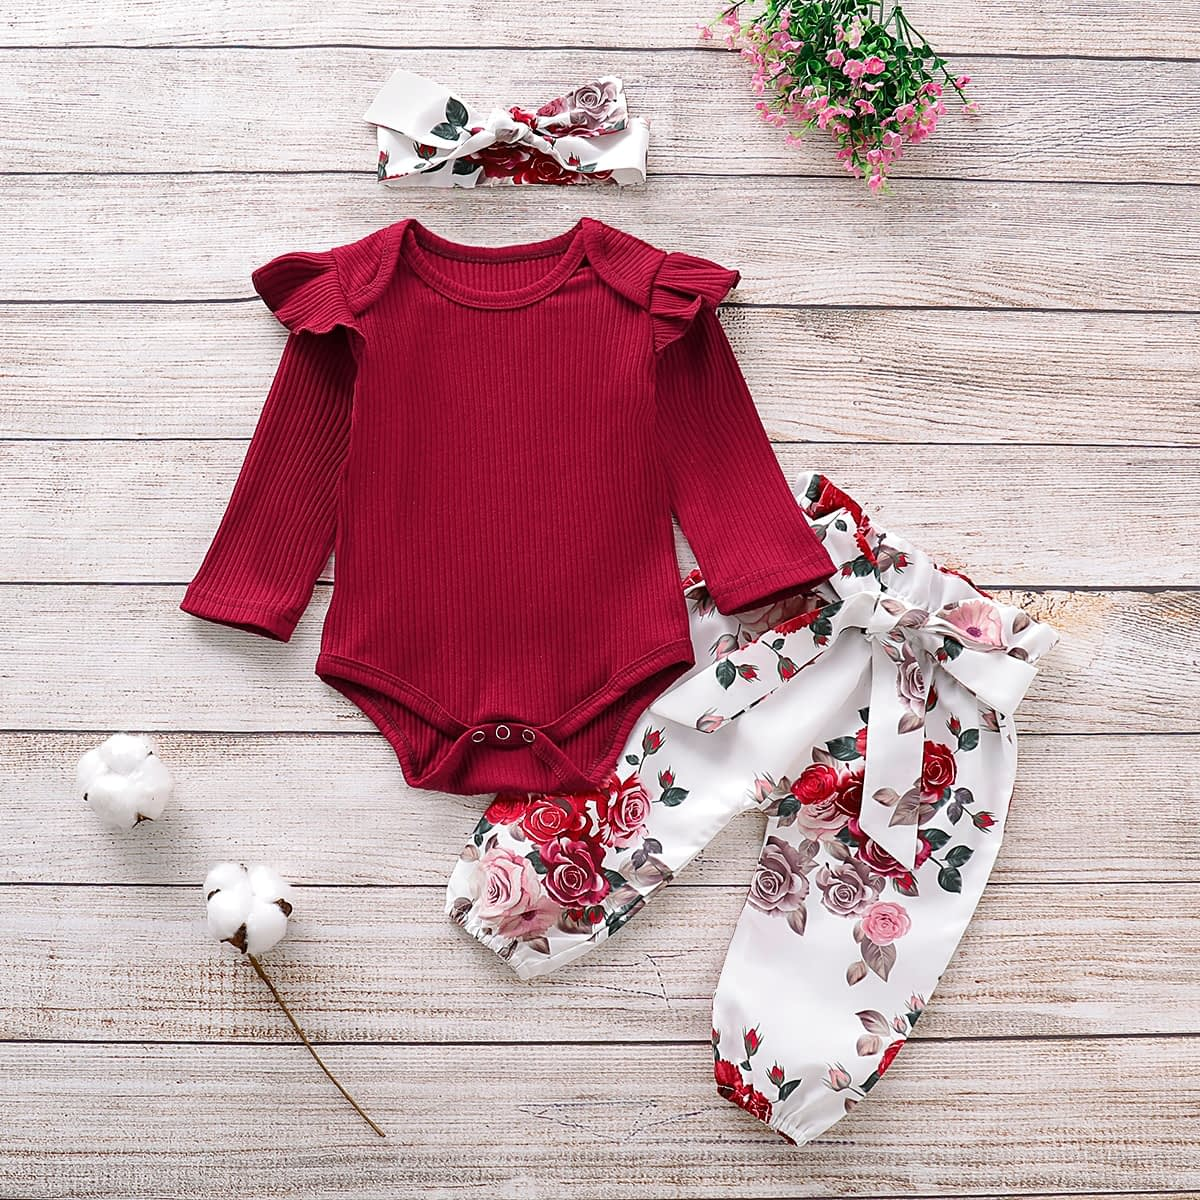 Baby Girl's Roses Printed Clothing Set